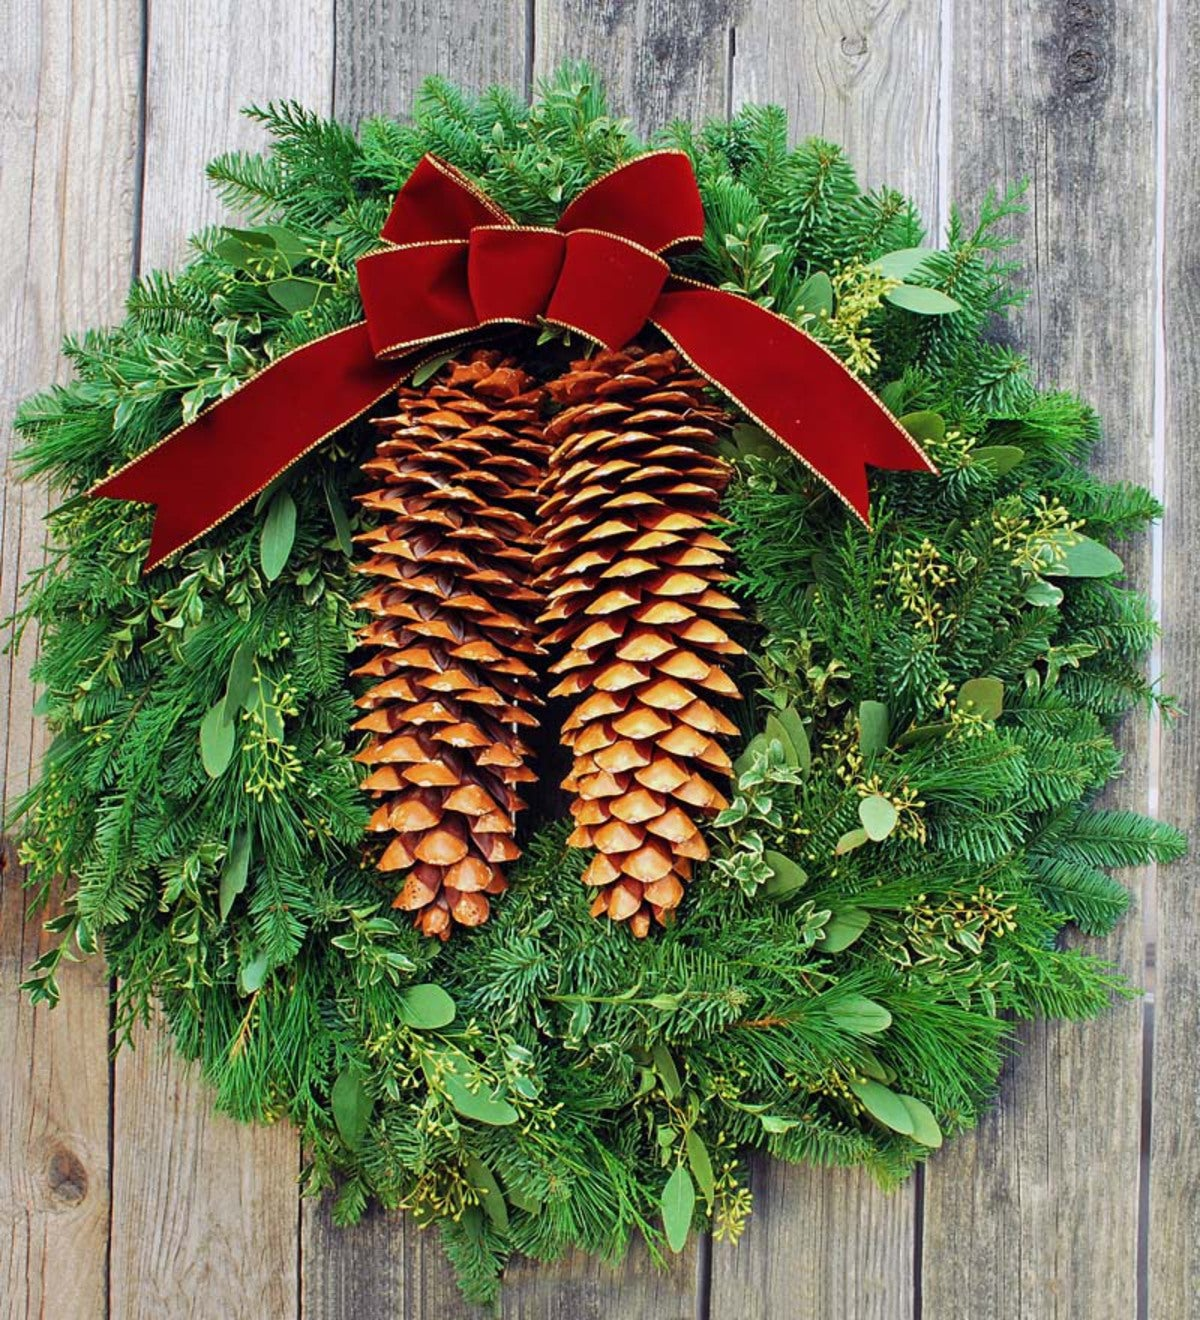 Handmade Fresh Tahoe Pine Holiday Wreath - 22""